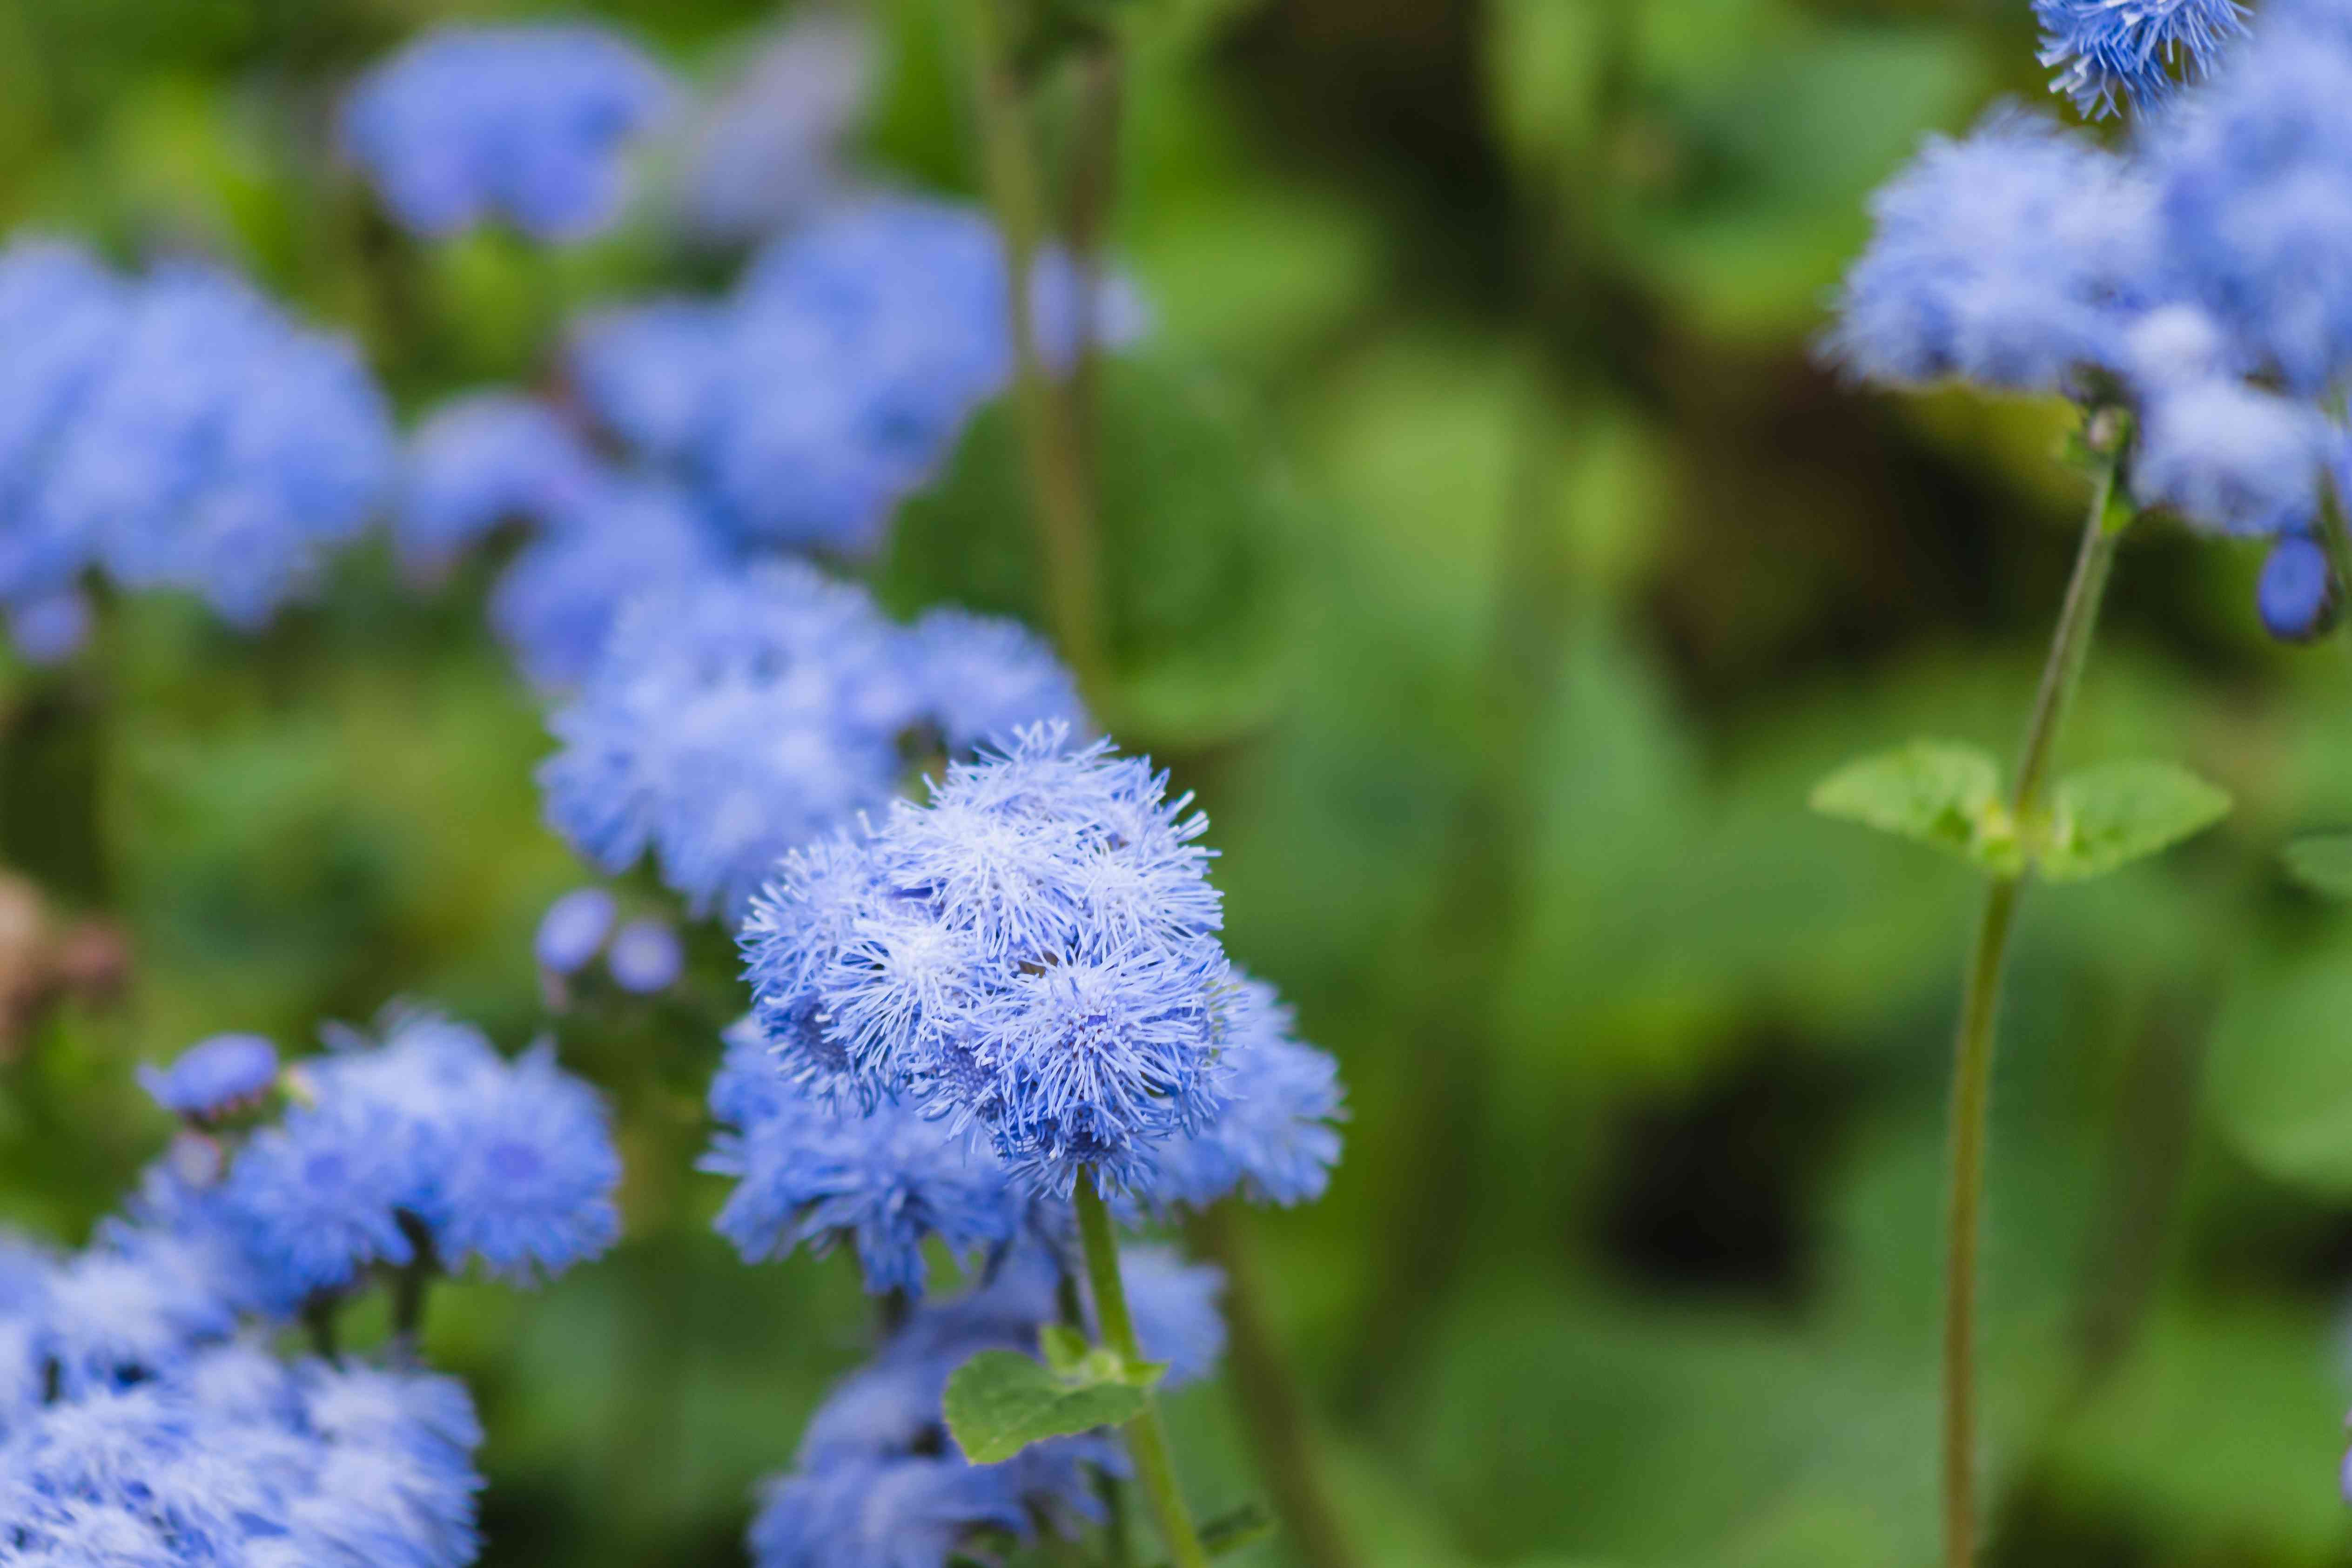 Blue ageratum with blue flowers in front of leaves